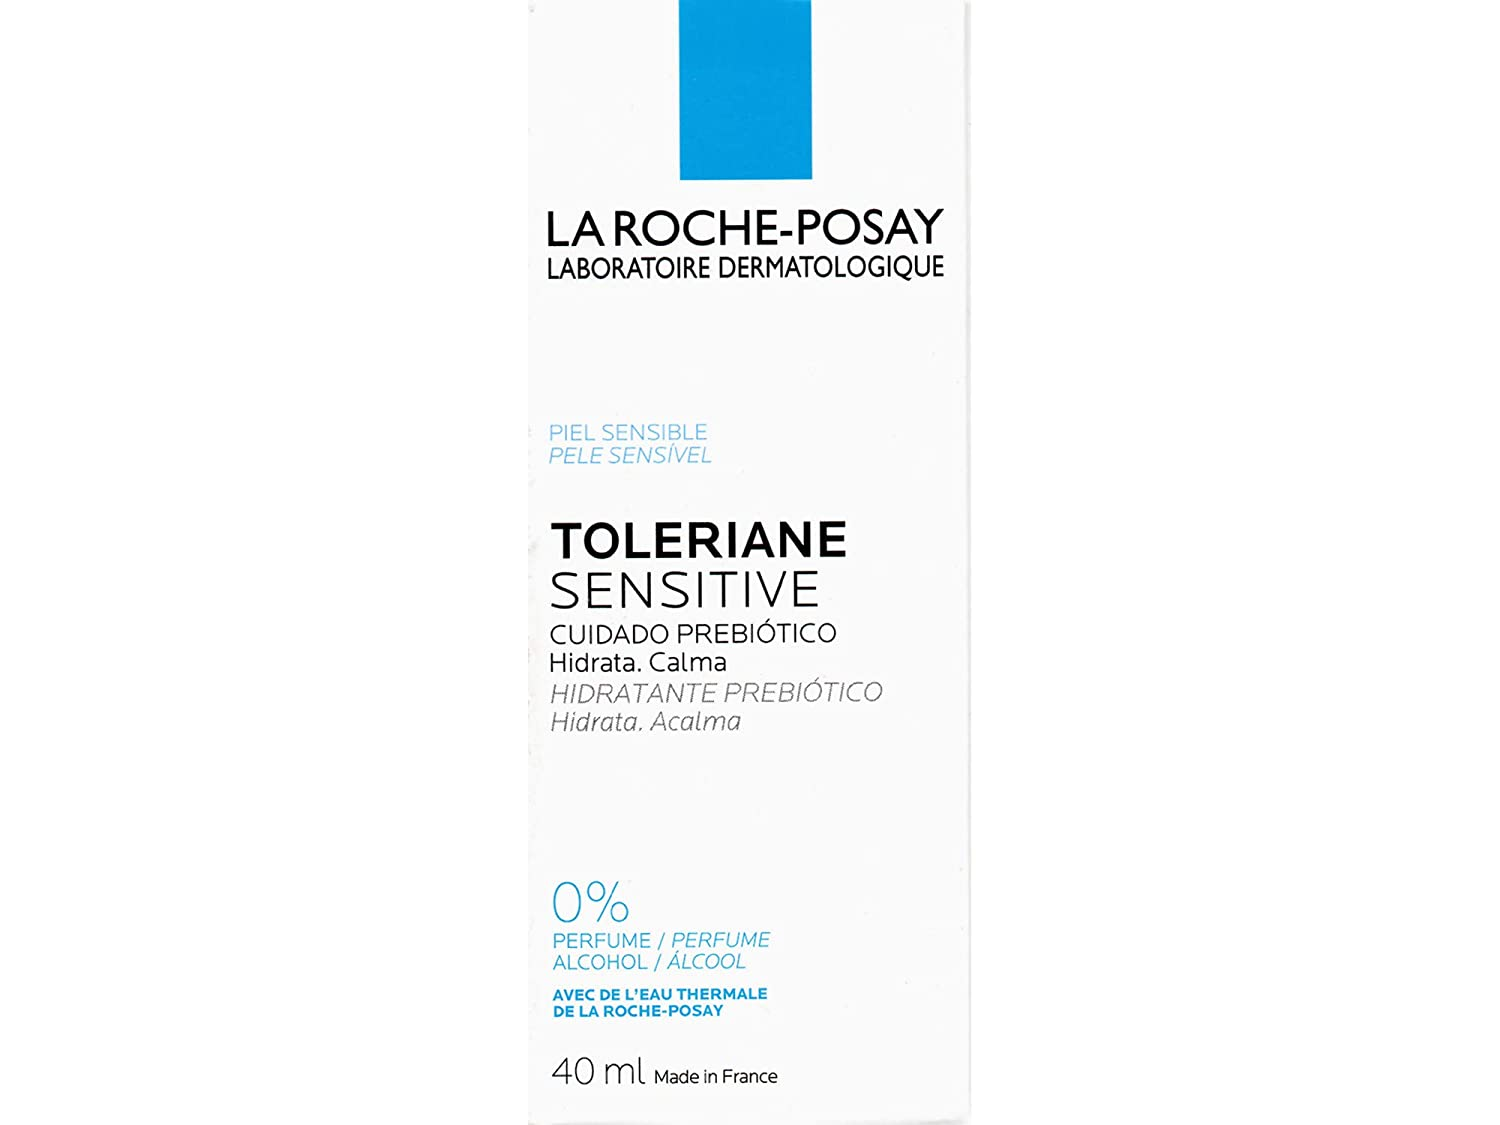 Toleriane Sensitive, 40 ml. - La Roche Posay 33591